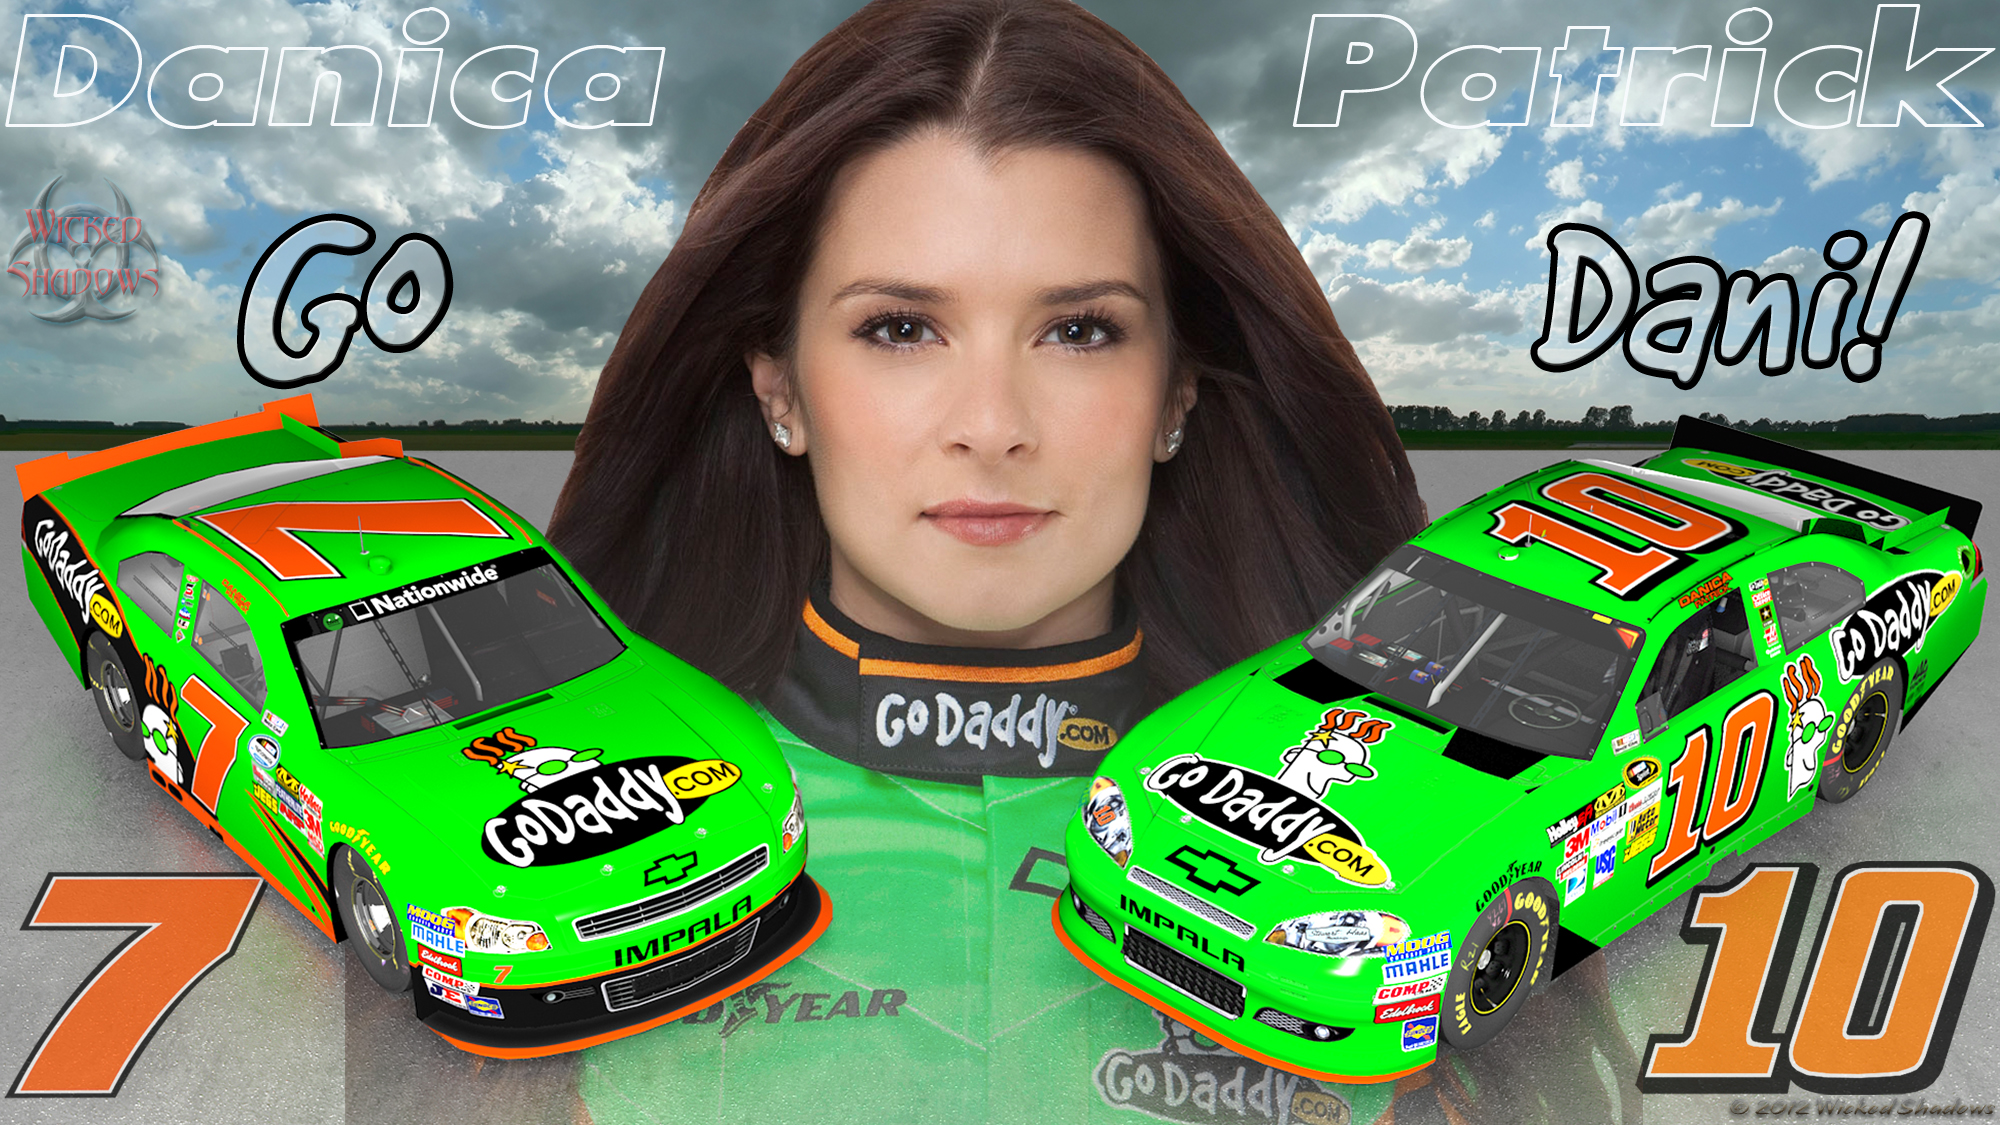 Danica Patrick rolls through Capitol Hill | TheHill